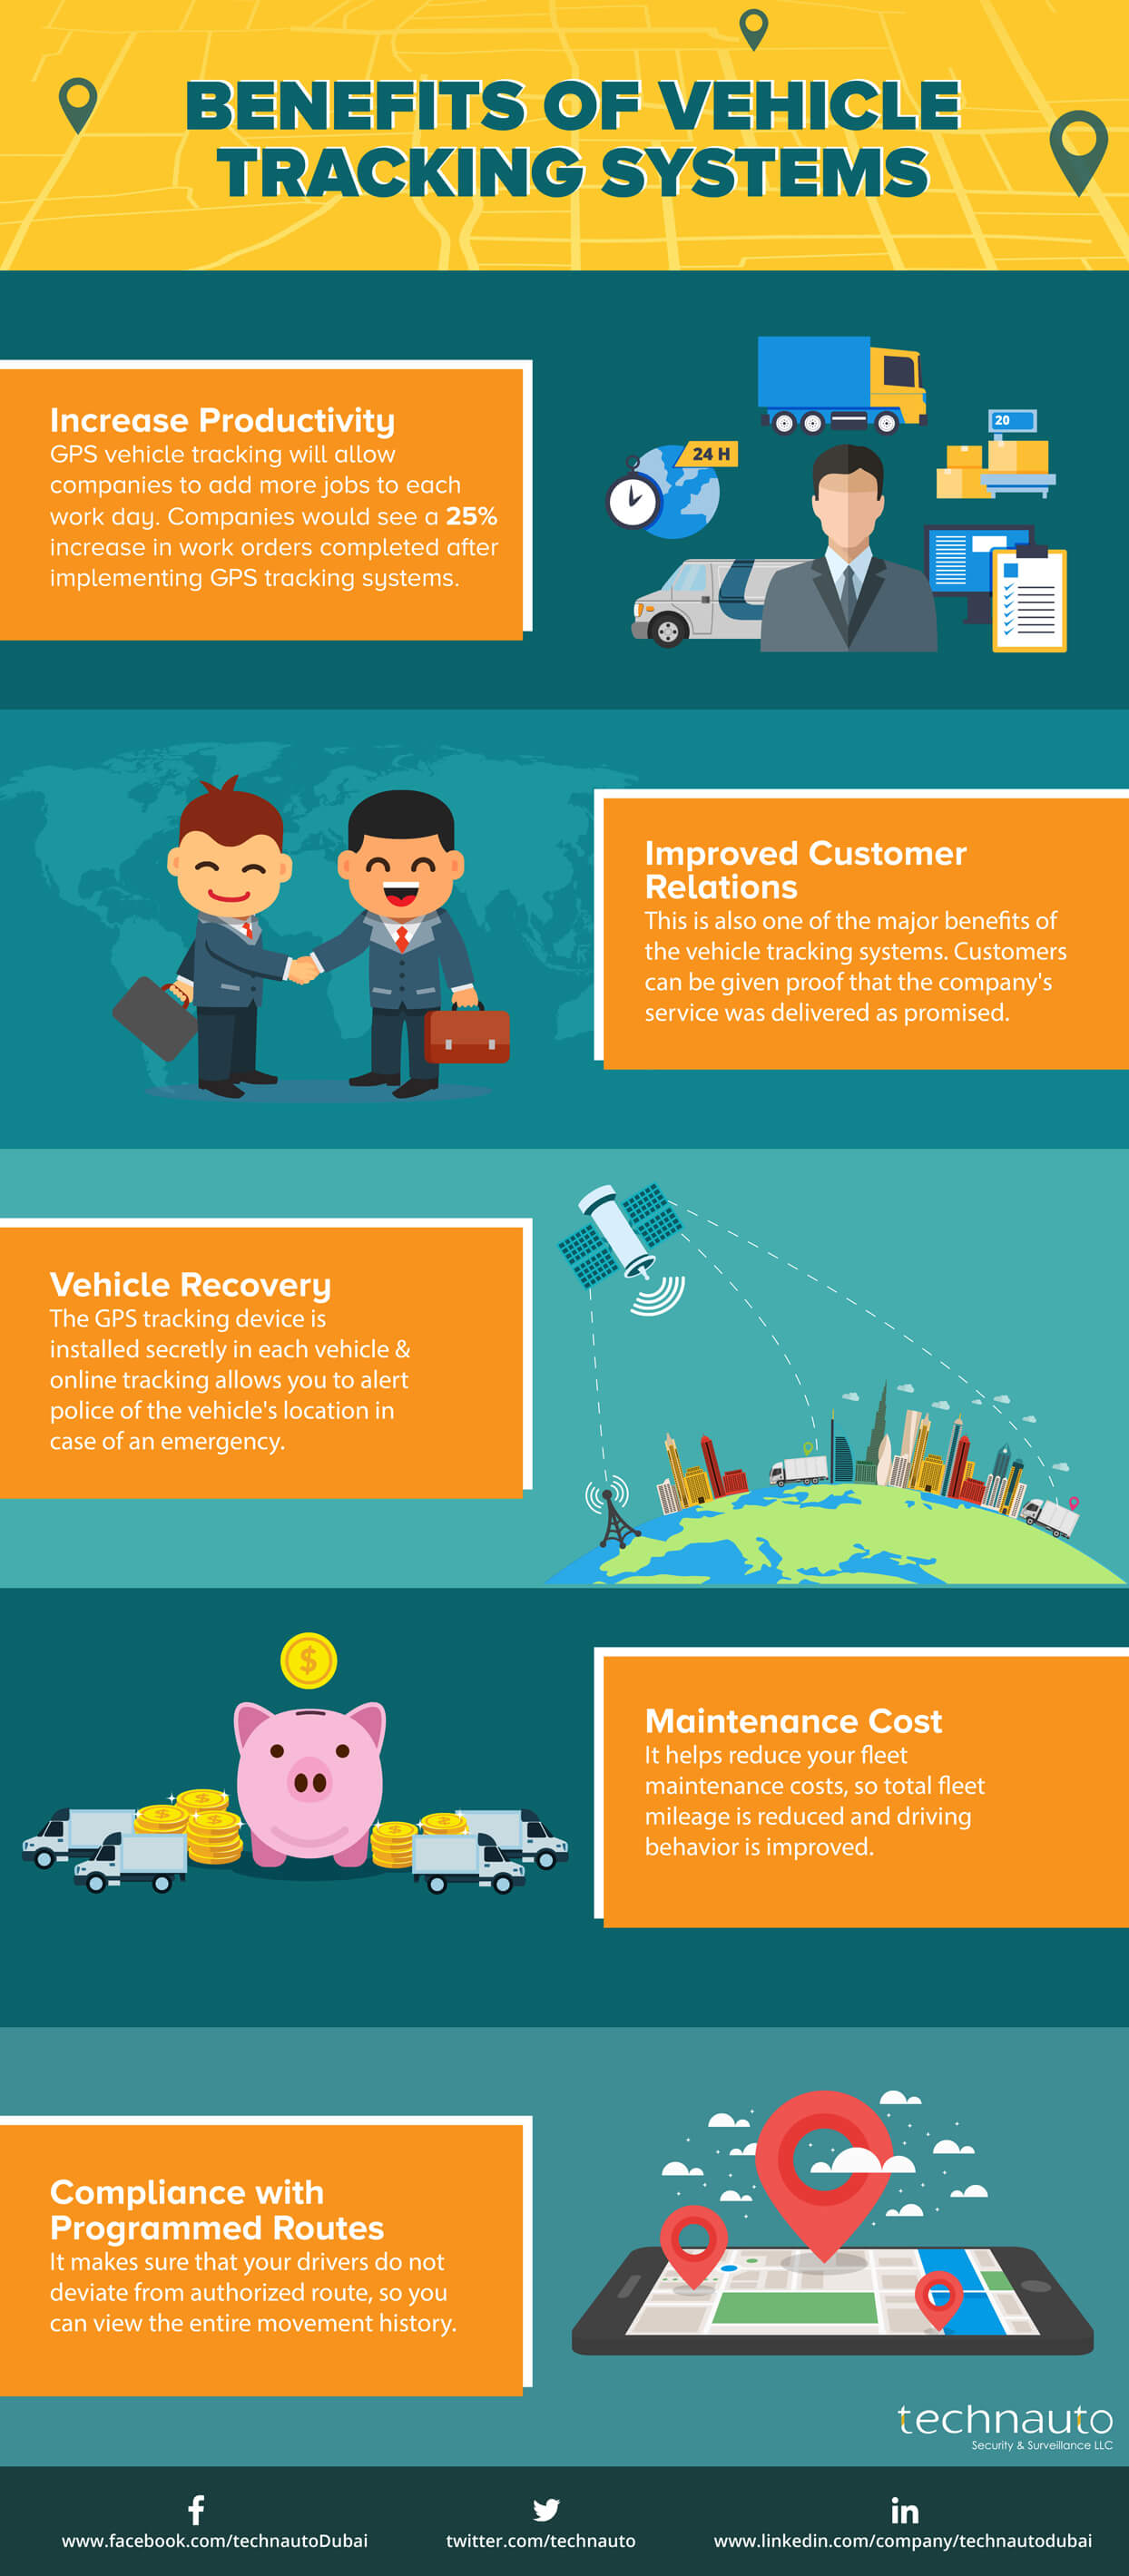 What are the Benefits to GPS vehicle tracking systems?